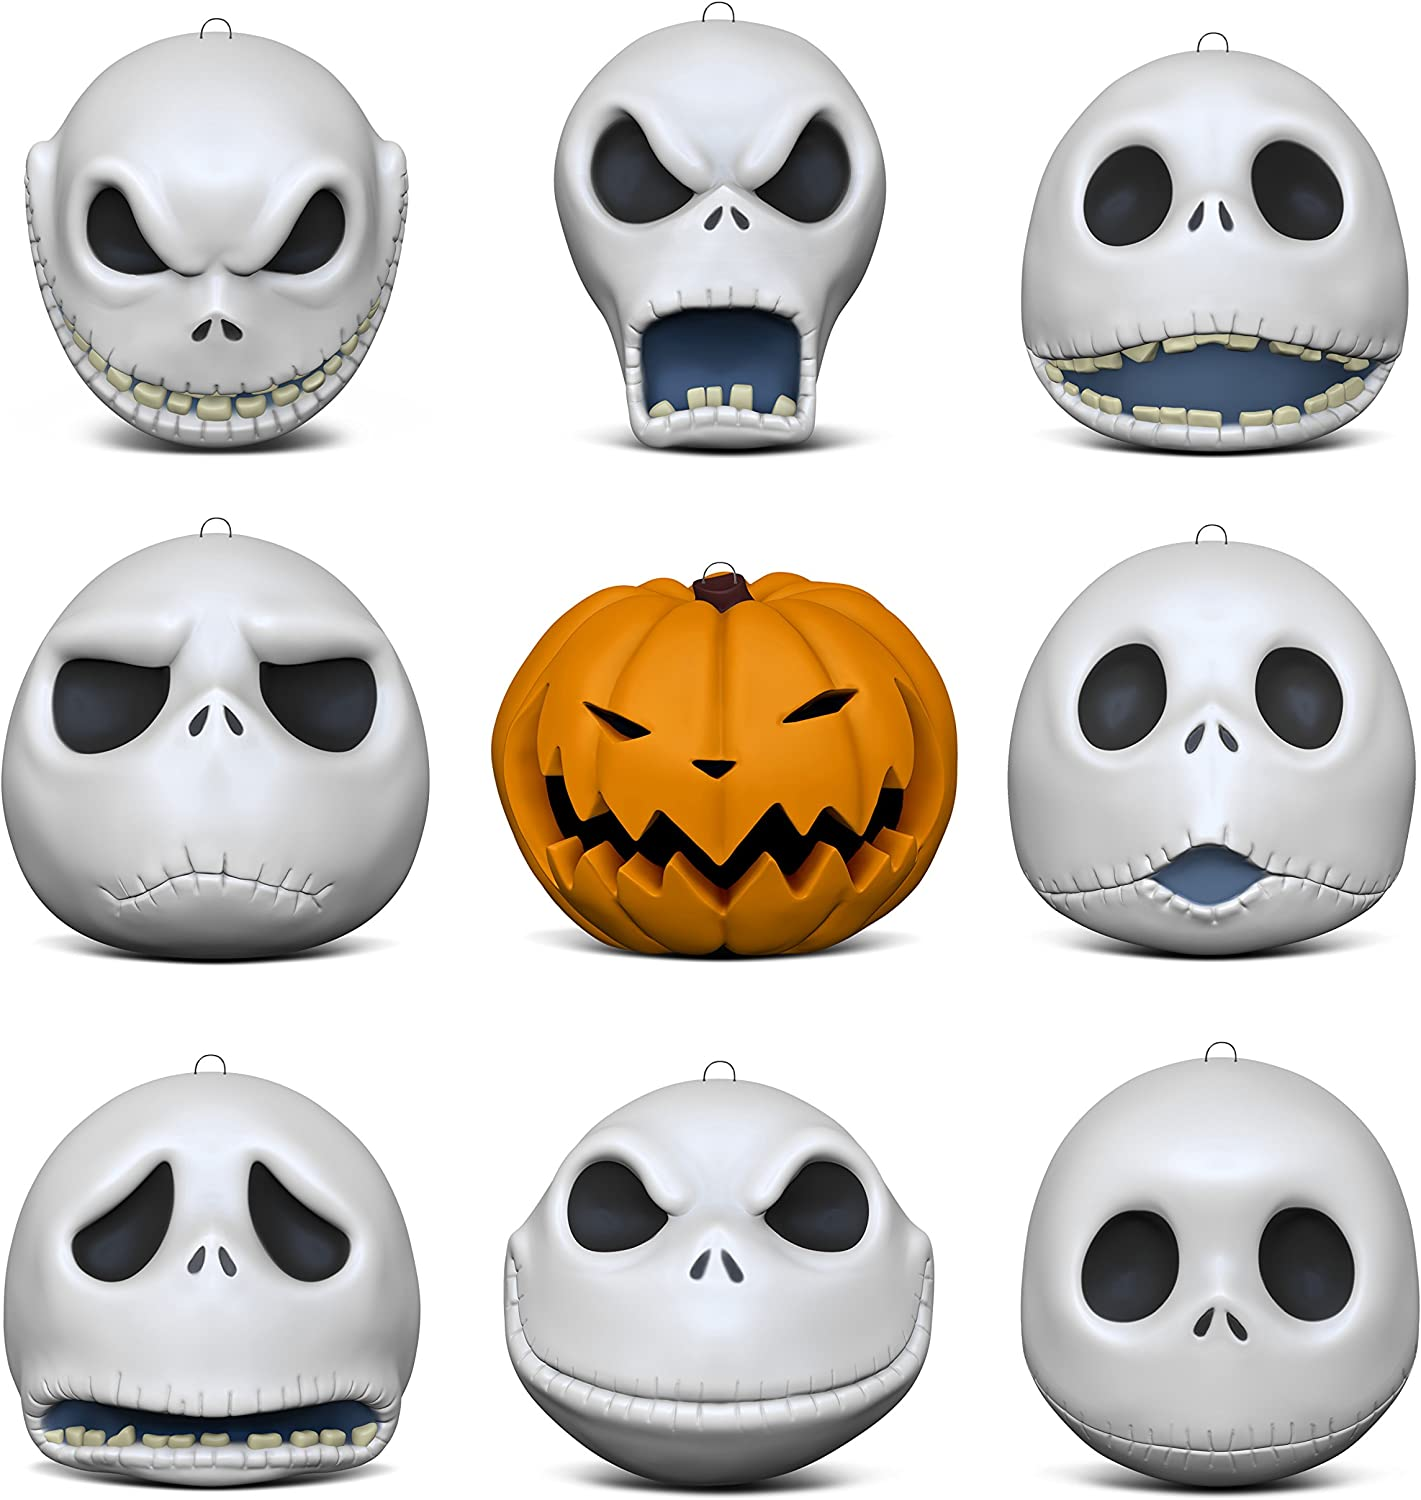 Amazon Com Hallmark Keepsake Christmas Ornaments 2018 Year Dated Tim Burton S The Nightmare Before Christmas The Many Faces Of Jack Skellington 25th Anniversary Porcelain Set Of 9 Home Kitchen